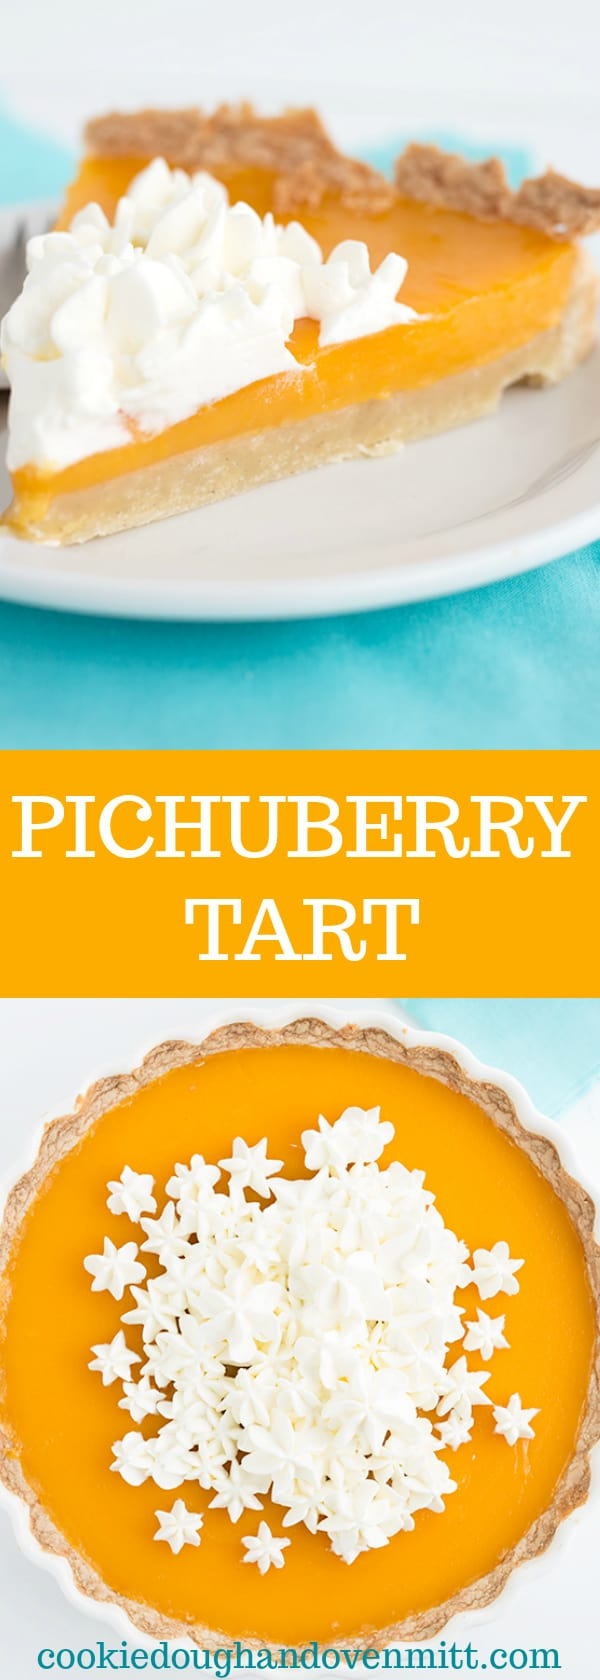 Pichuberry Tart - This tart has a shortbread cookie crust. It's baked into a tart pan and a pichuberry curd poured on top using pichuberry puree.